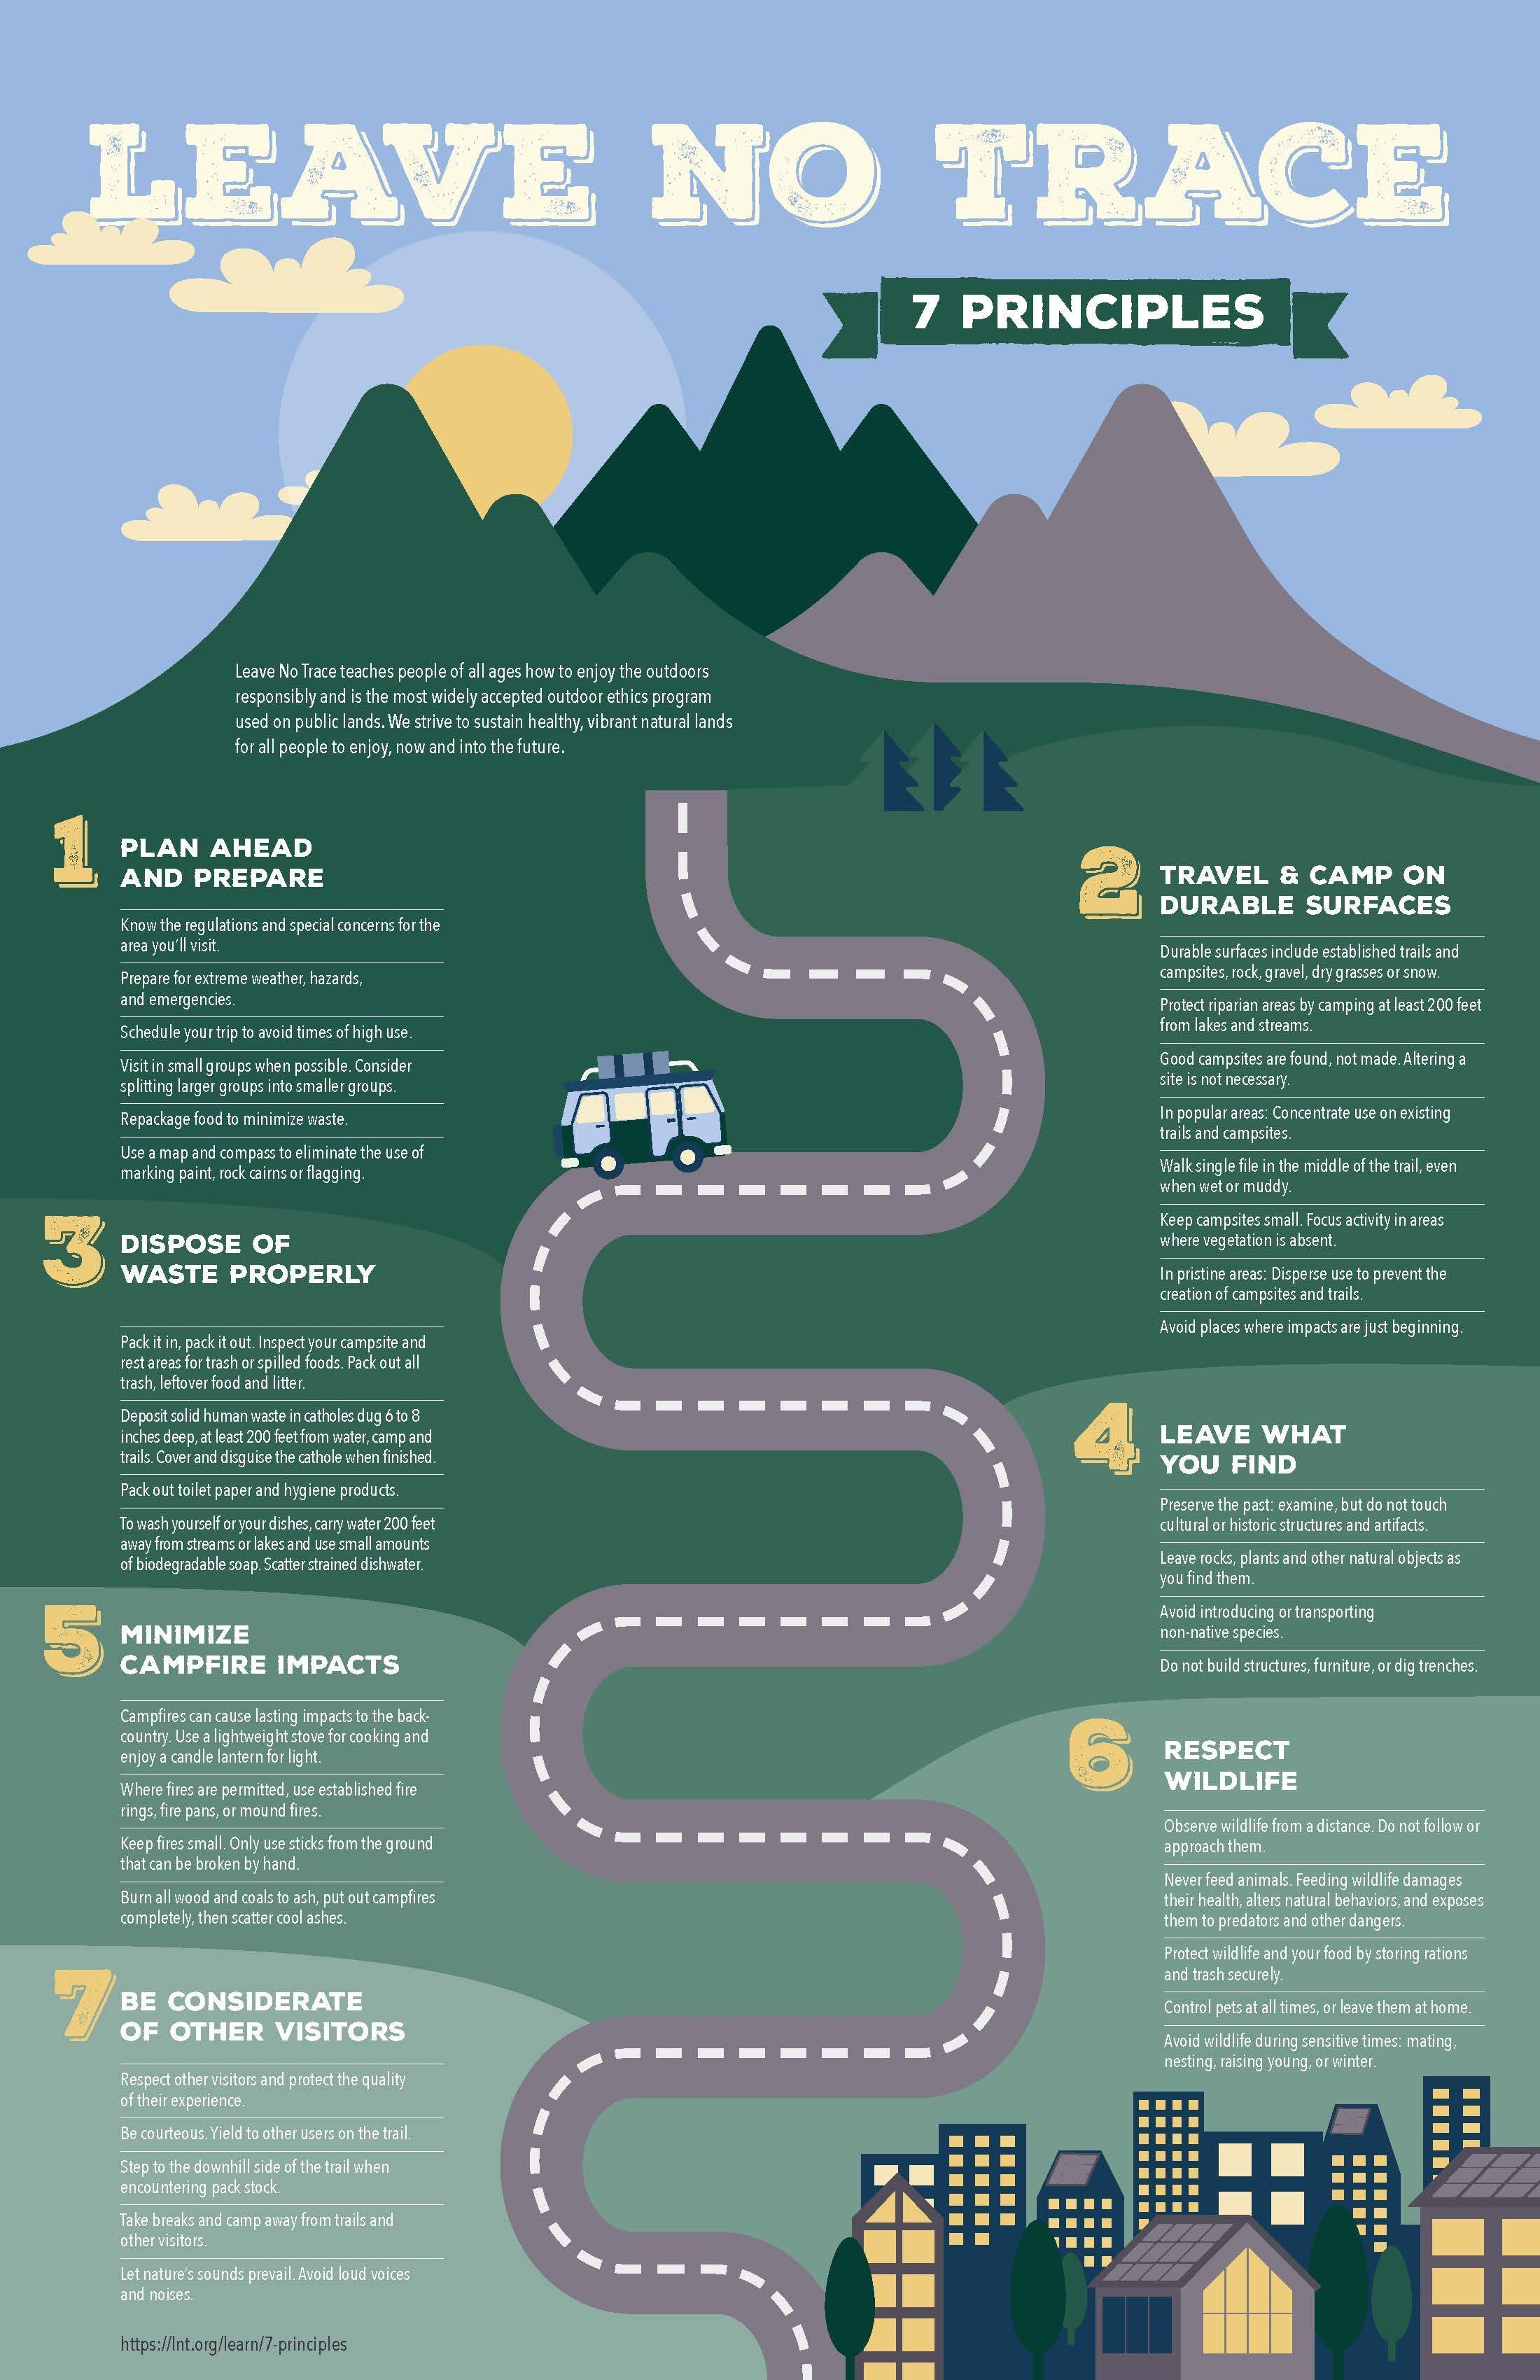 Leave No Trace 7 Principles Infographic Cubscouts Leave